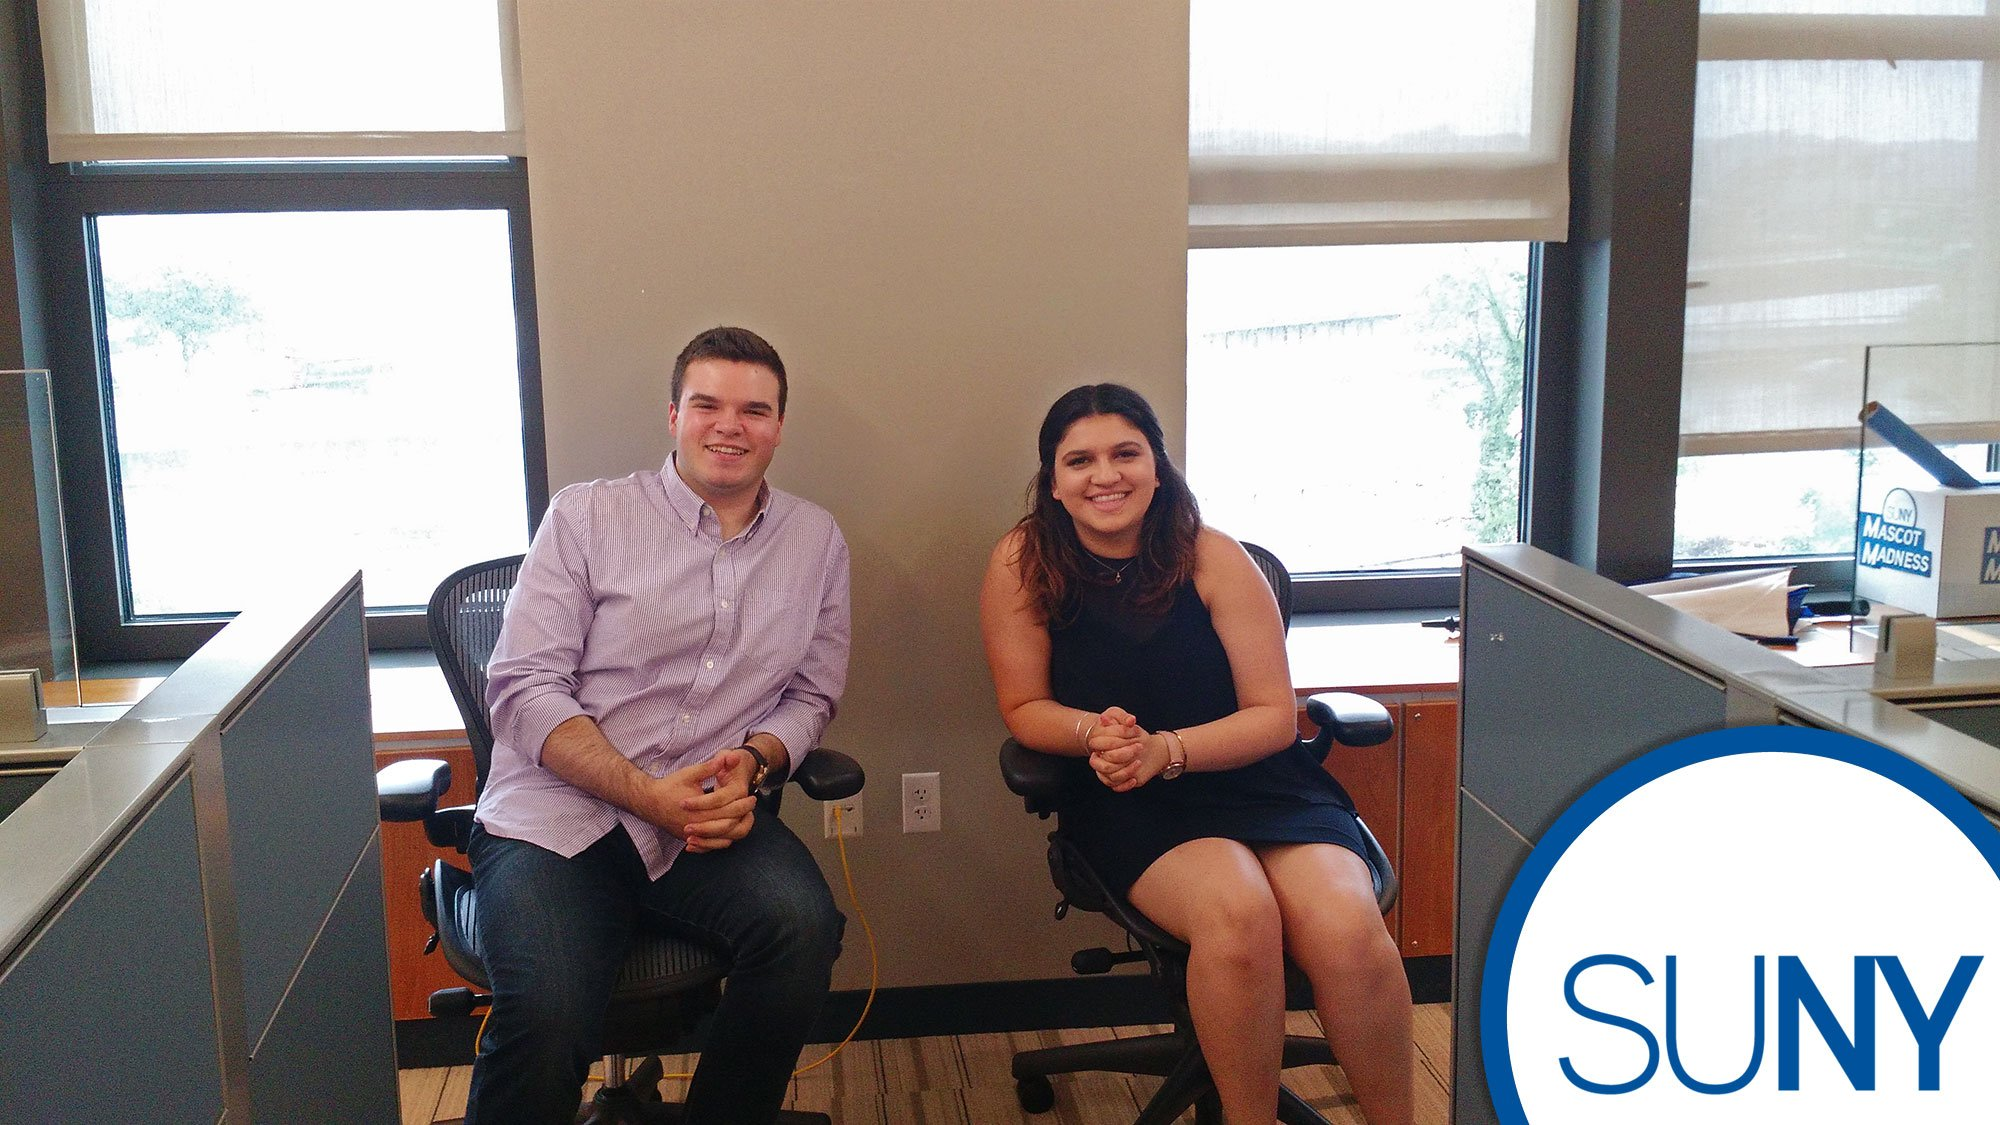 It's #NationalInternDay. Thank you to all the interns who make our #SUNY work environments special. #SUNYInternDay: https://t.co/TSlSzovbcL https://t.co/Bz0dI9q9mC